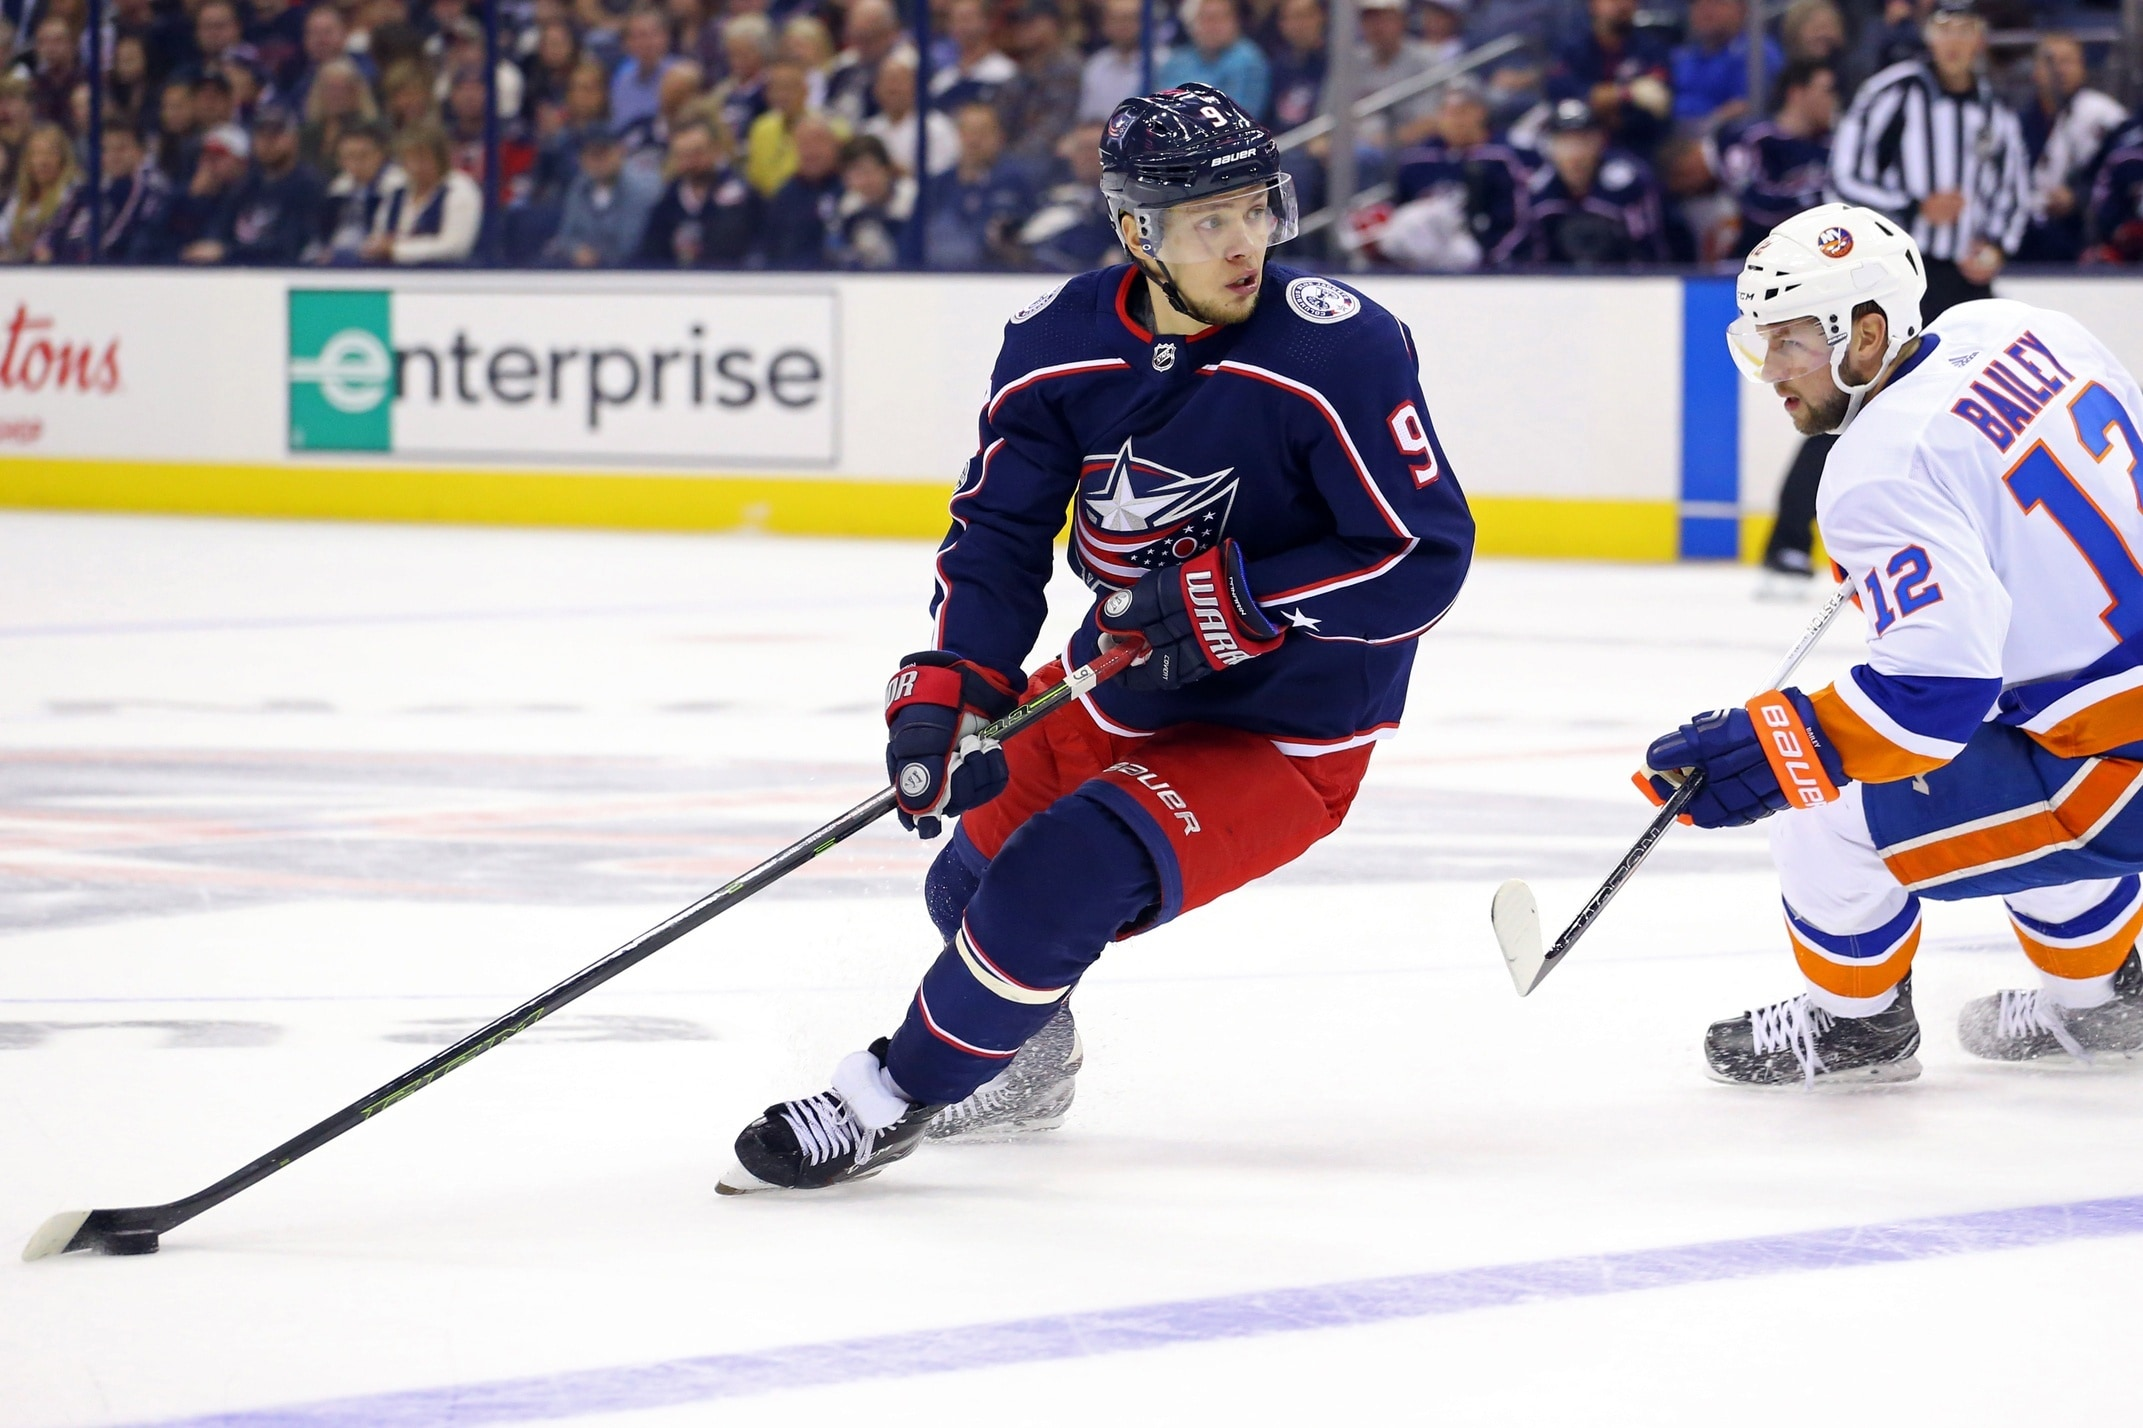 Some thoughts on Artemi Panarin